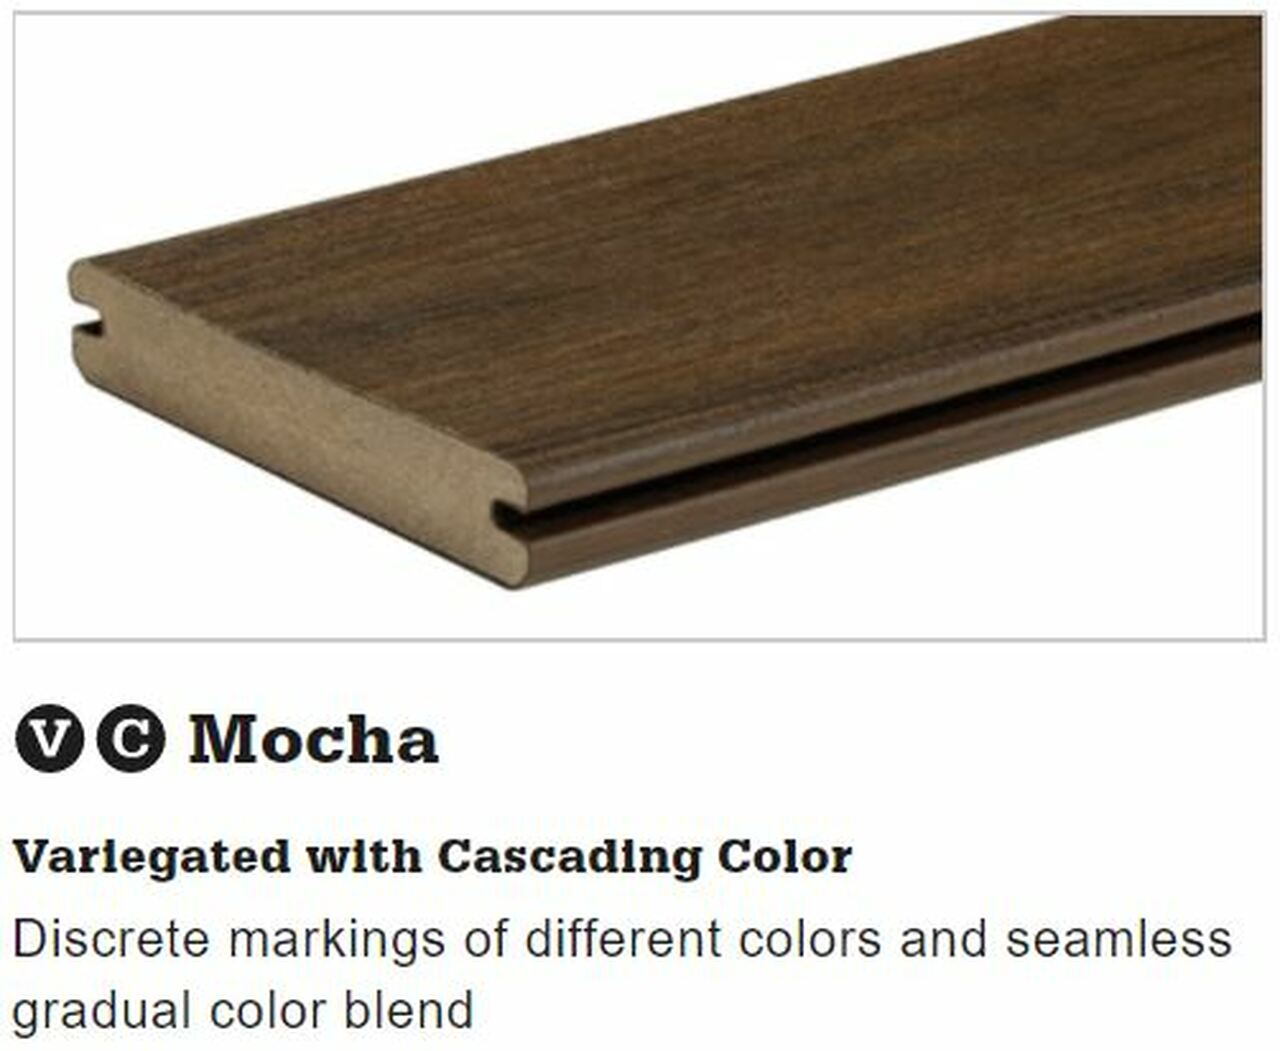 TimberTech Legacy Grooved Decking in Mocha